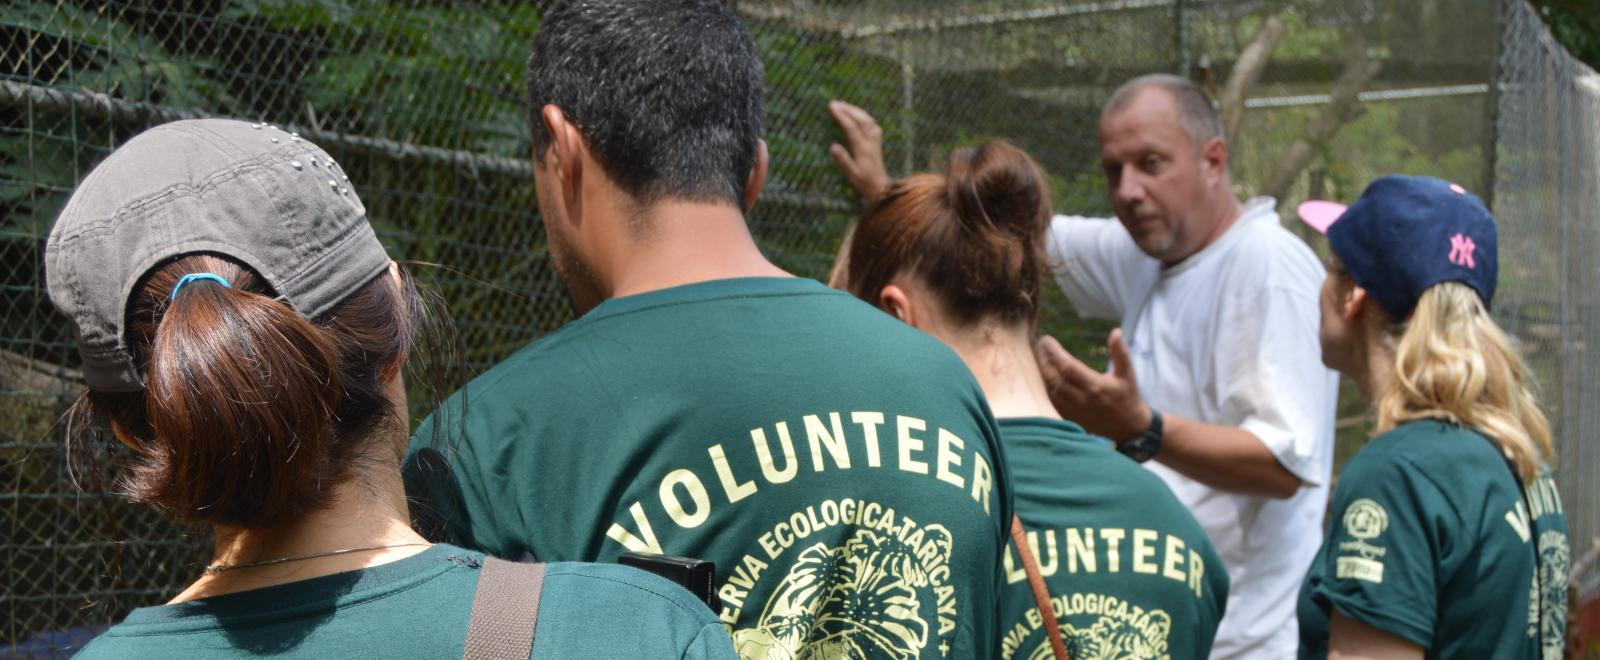 Stuart Timson take the Conservation volunteers on a tour of the animal rescue centre in Peru